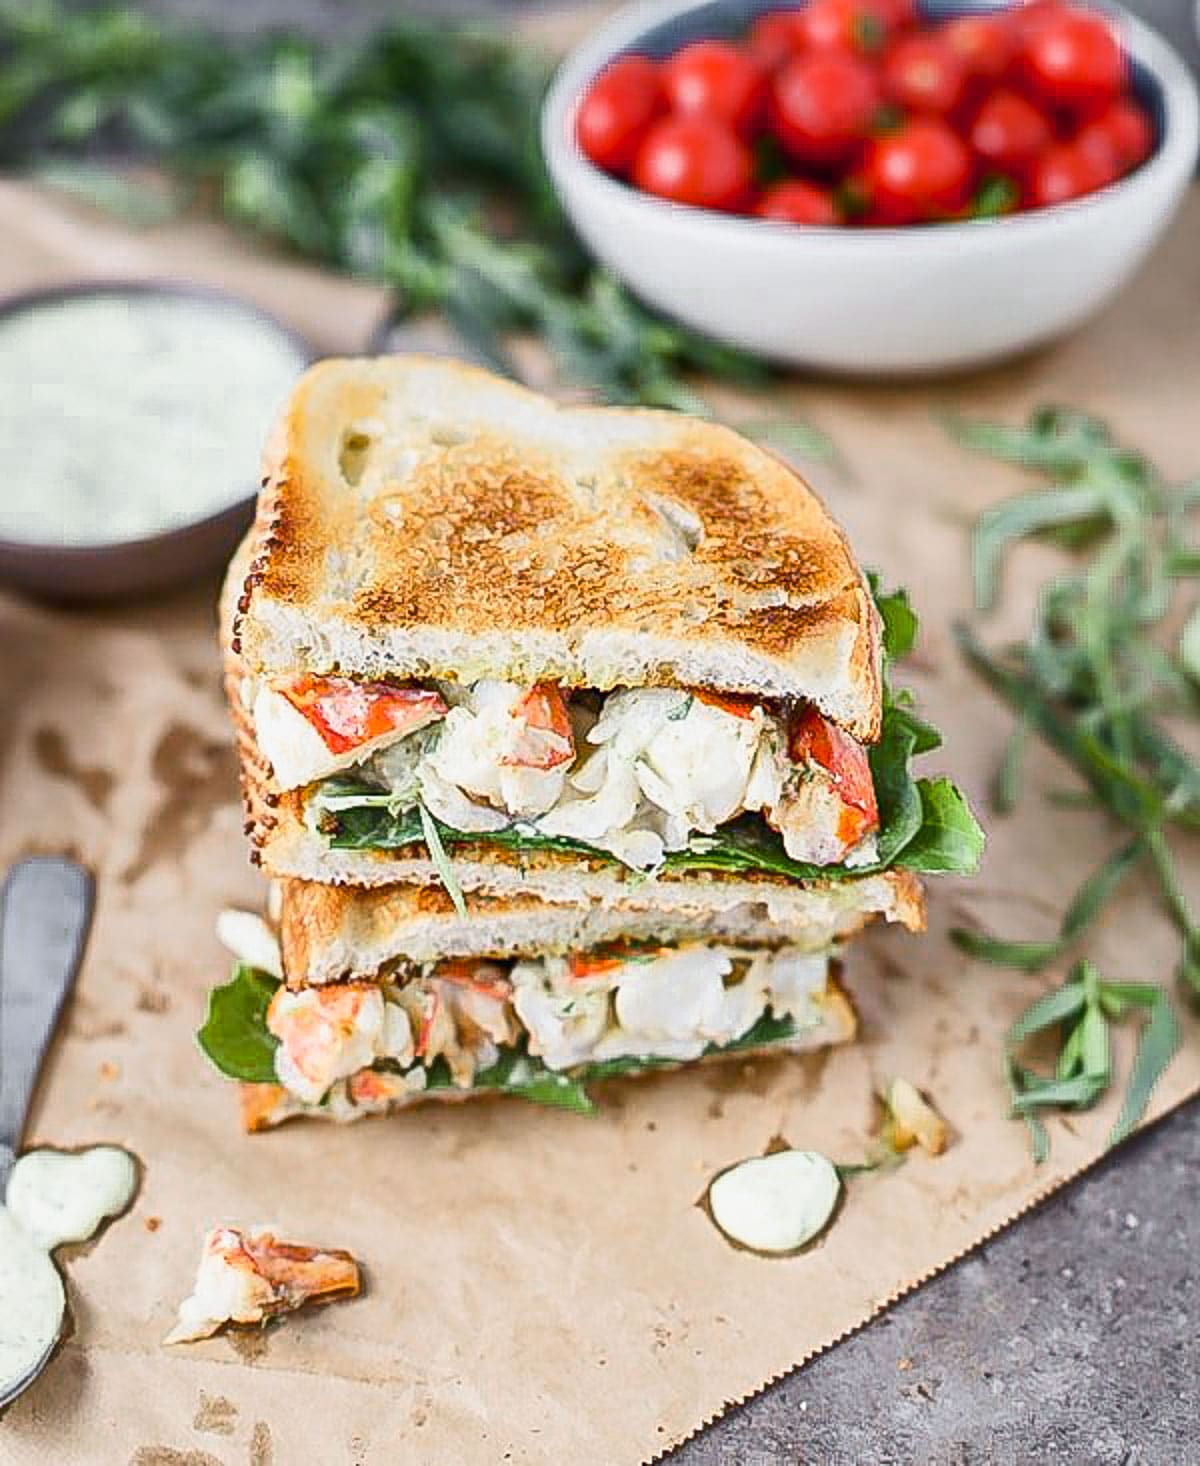 Our Green Goddess Lobster Sandwich Recipe is a dressed-up version of a classic lobster roll. We toss perfectly cooked buttery lobster with a quick green goddess dressing studded with fresh tarragon, basil, and green onion. We pile it high on toasted sourdough bread and top it off with peppery arugula and a squeeze of lemon.